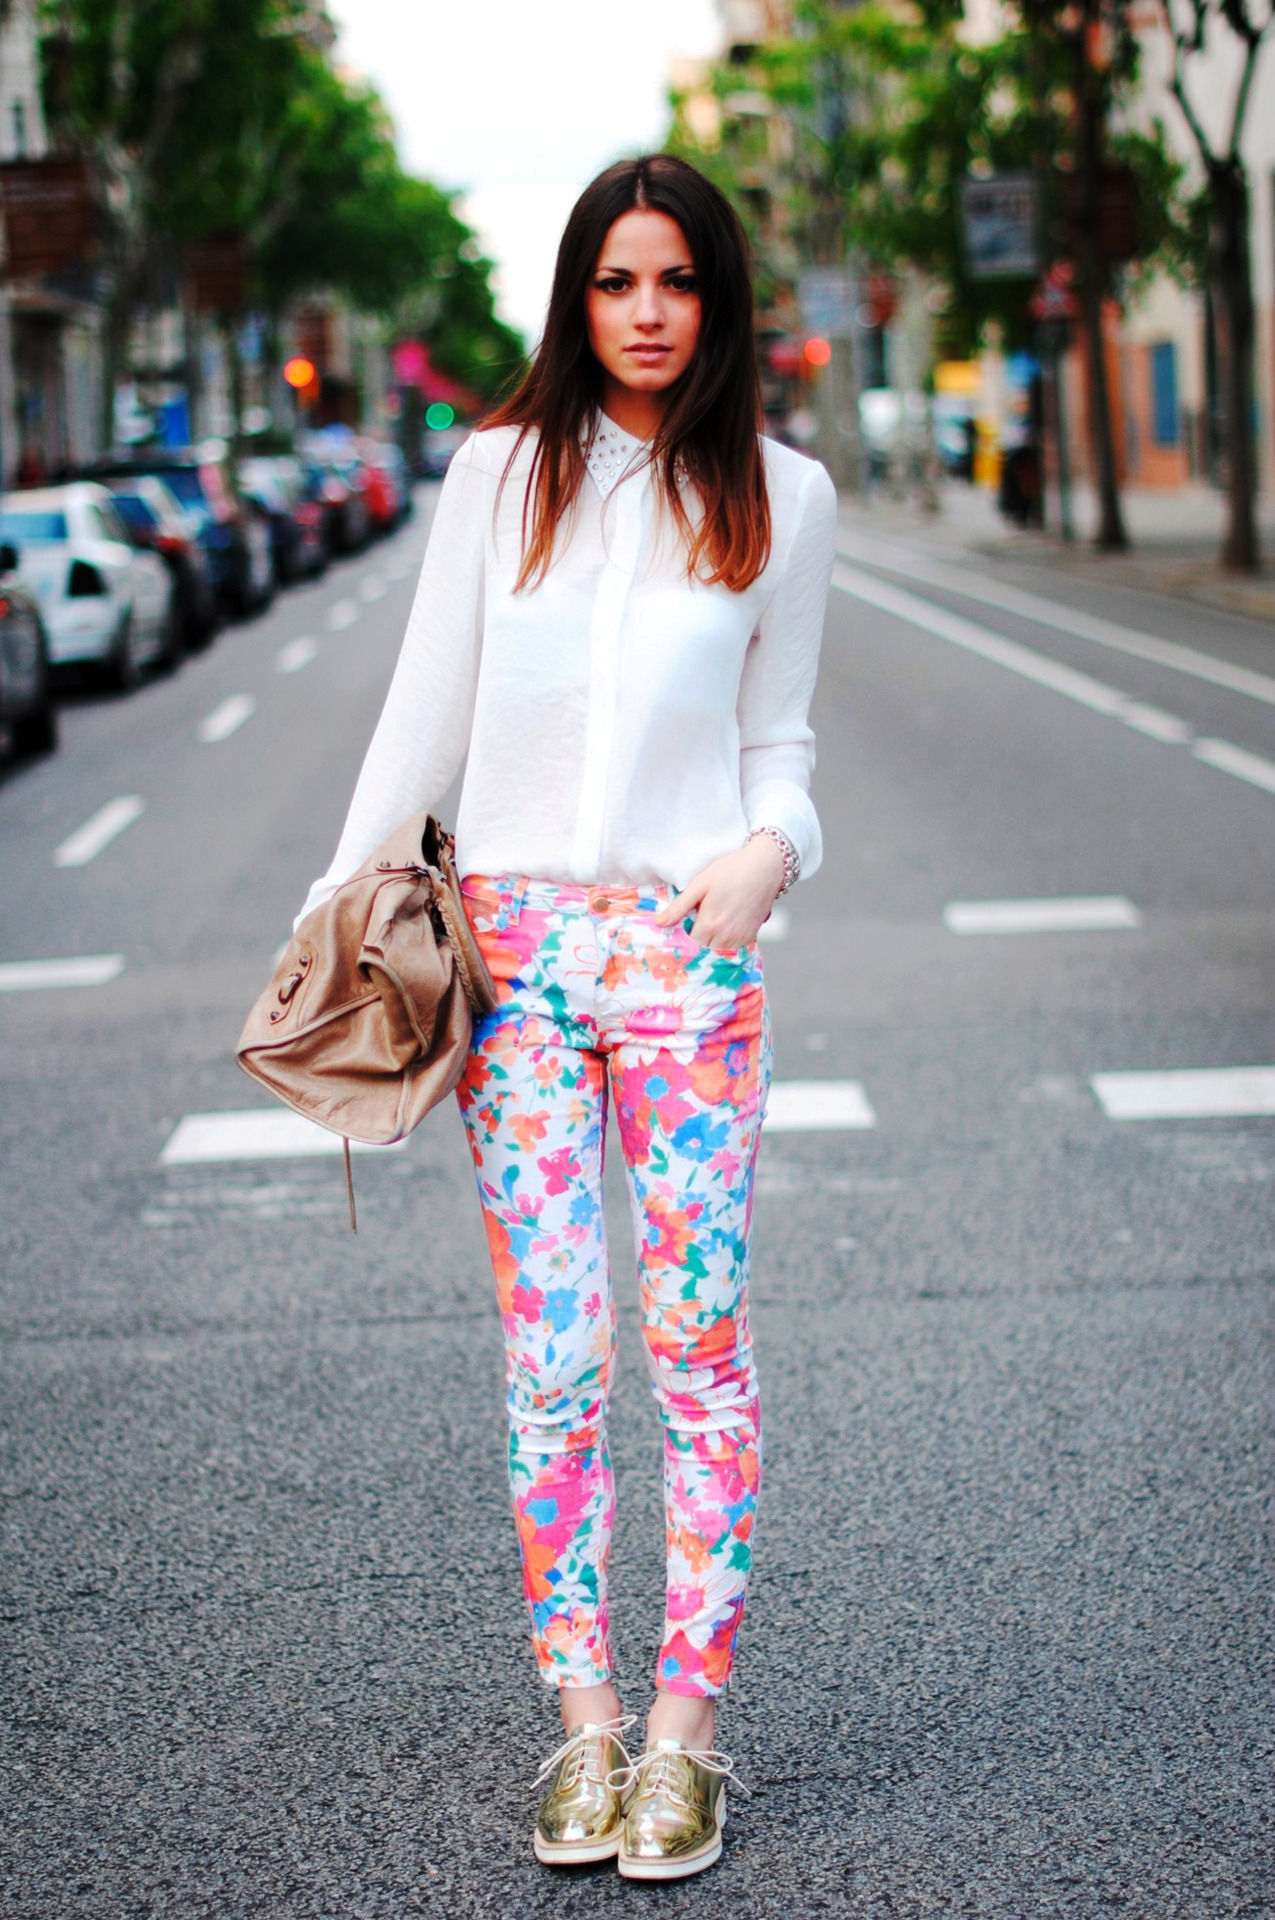 3-Printed Pant Outfit